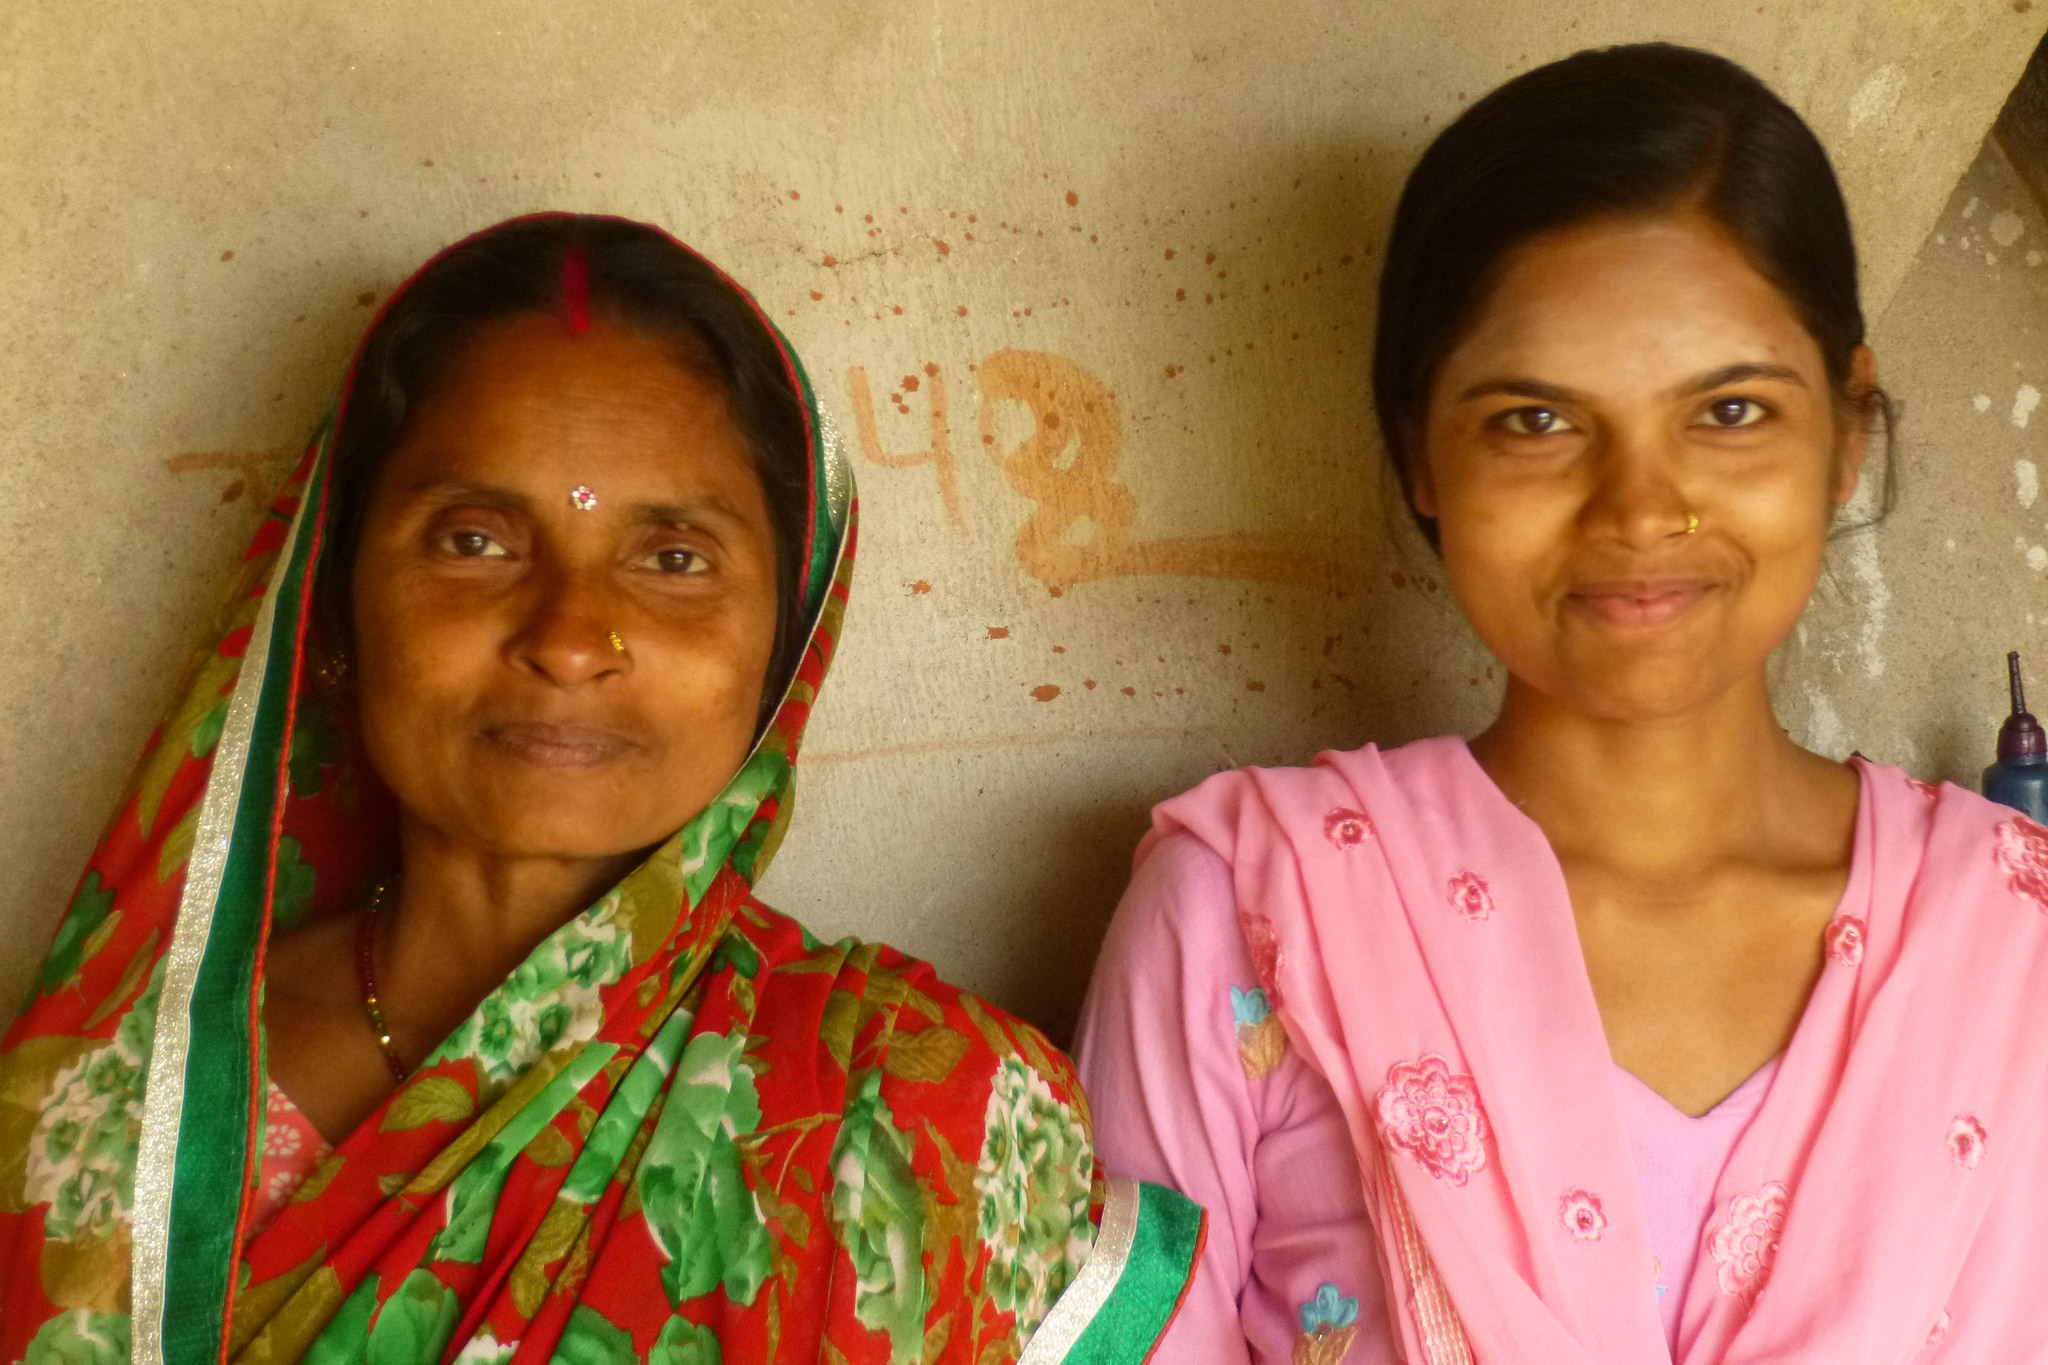 Prabhouti's mother took some convincing at first but is proud as can be now that her daughter has finished high school - photo by Sarah.